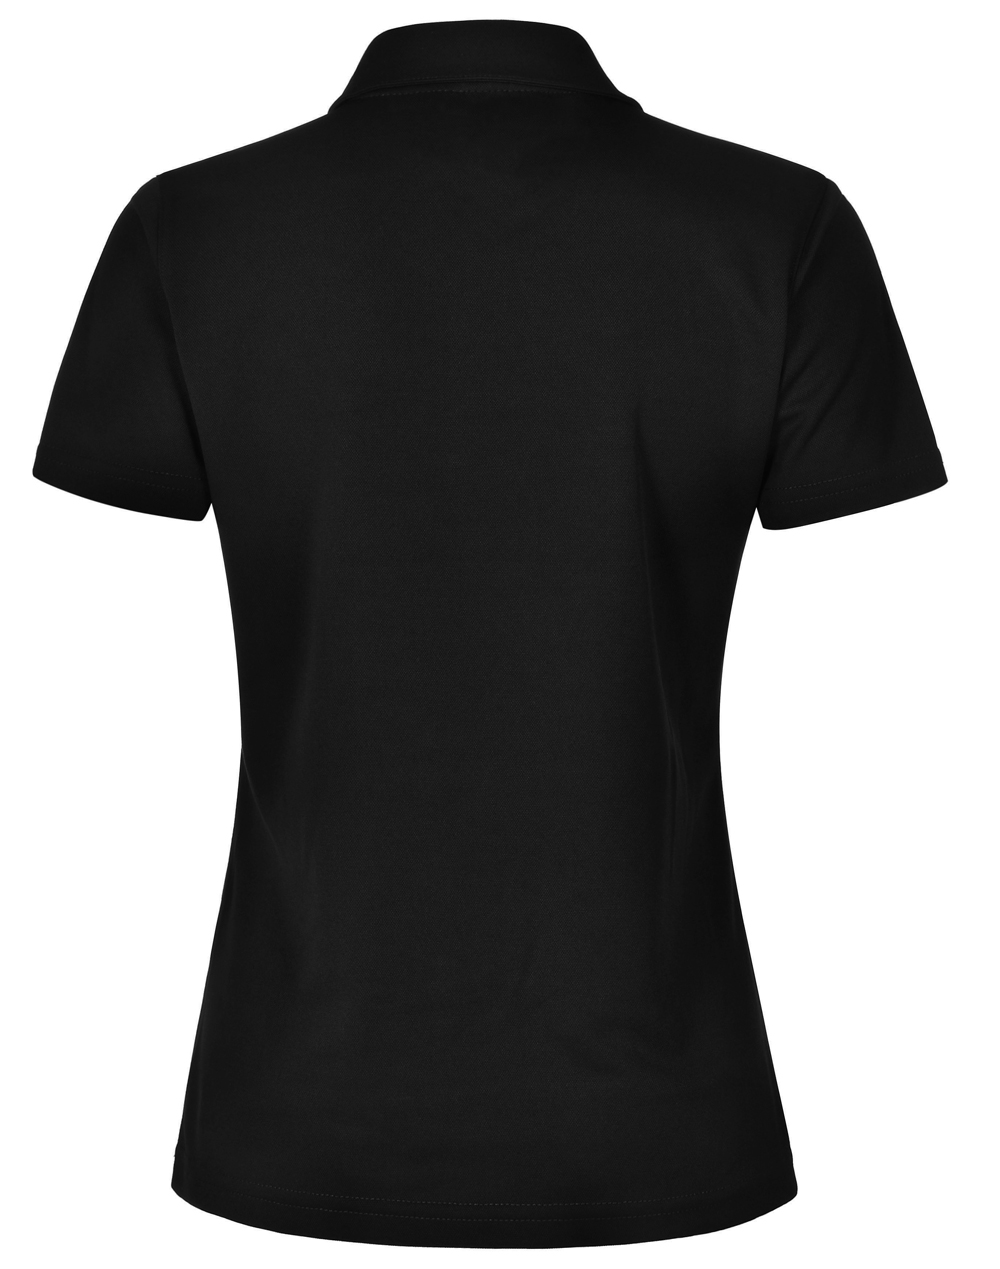 https://s3-ap-southeast-1.amazonaws.com/ws-imgs/POLOSHIRTS/PS84_BlackAsh_Back.jpg